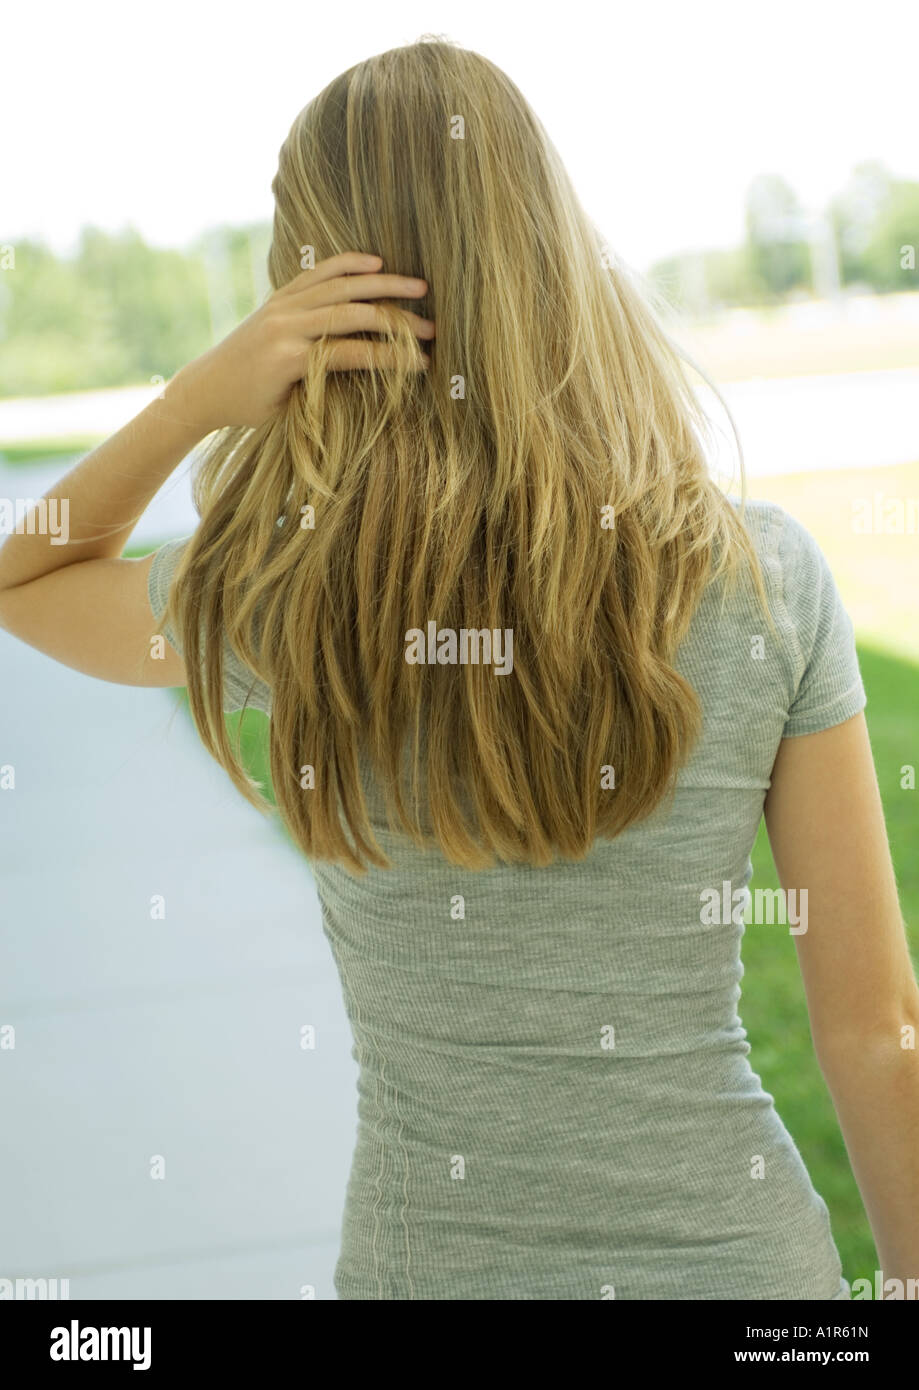 Young woman pushing hair back, rear view, waist up - Stock Image